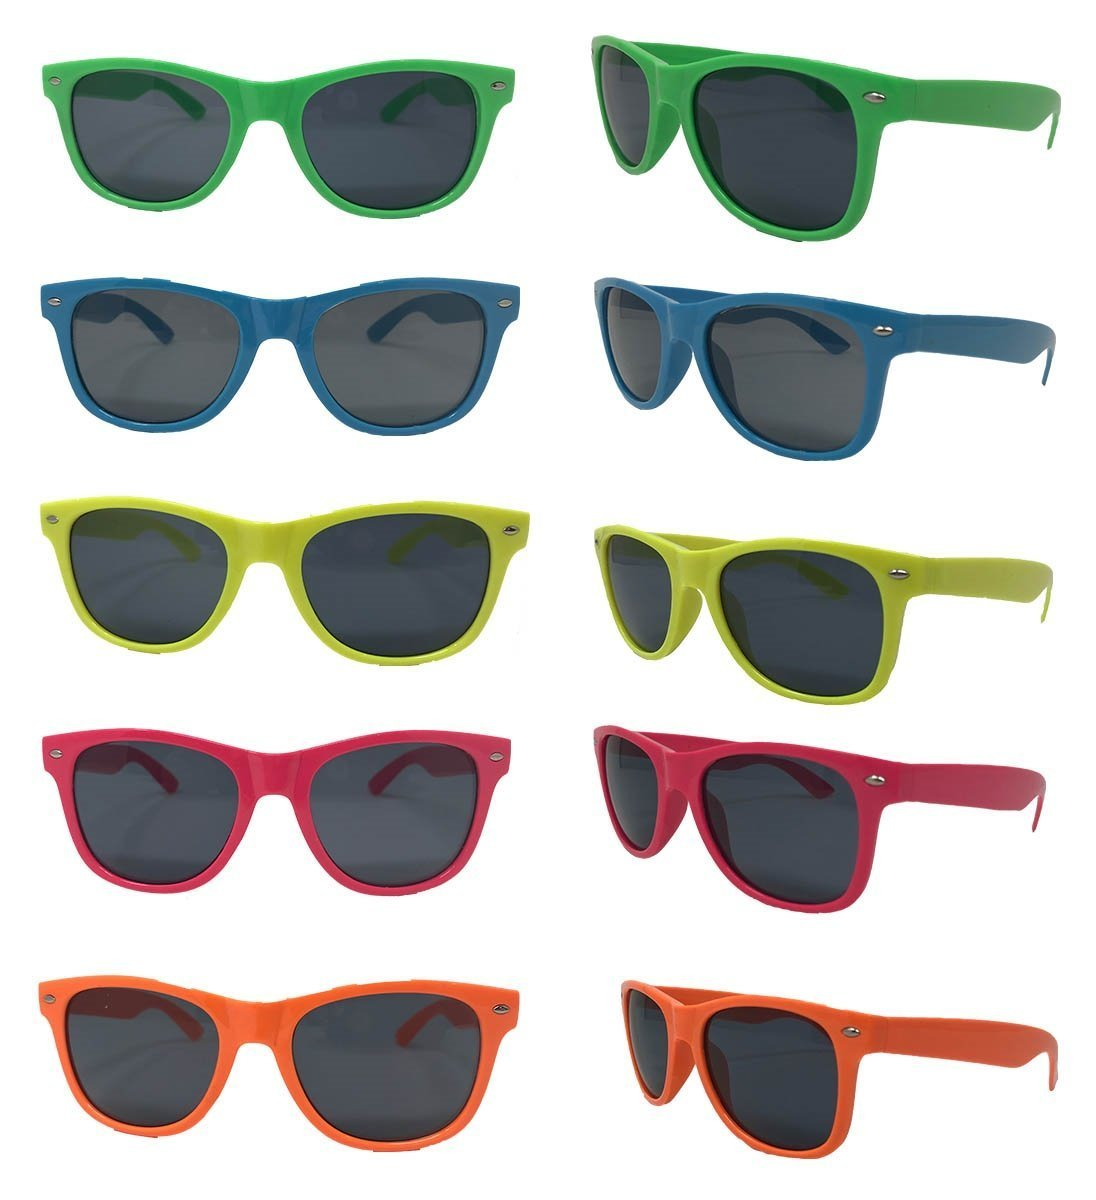 Neon Sunglasses (Pack 30) Assorted Cool Colors Wayfarer Neon Sunglasses Party Favors Party Pack Wholesale Bulk for Adults Kids Better Quality